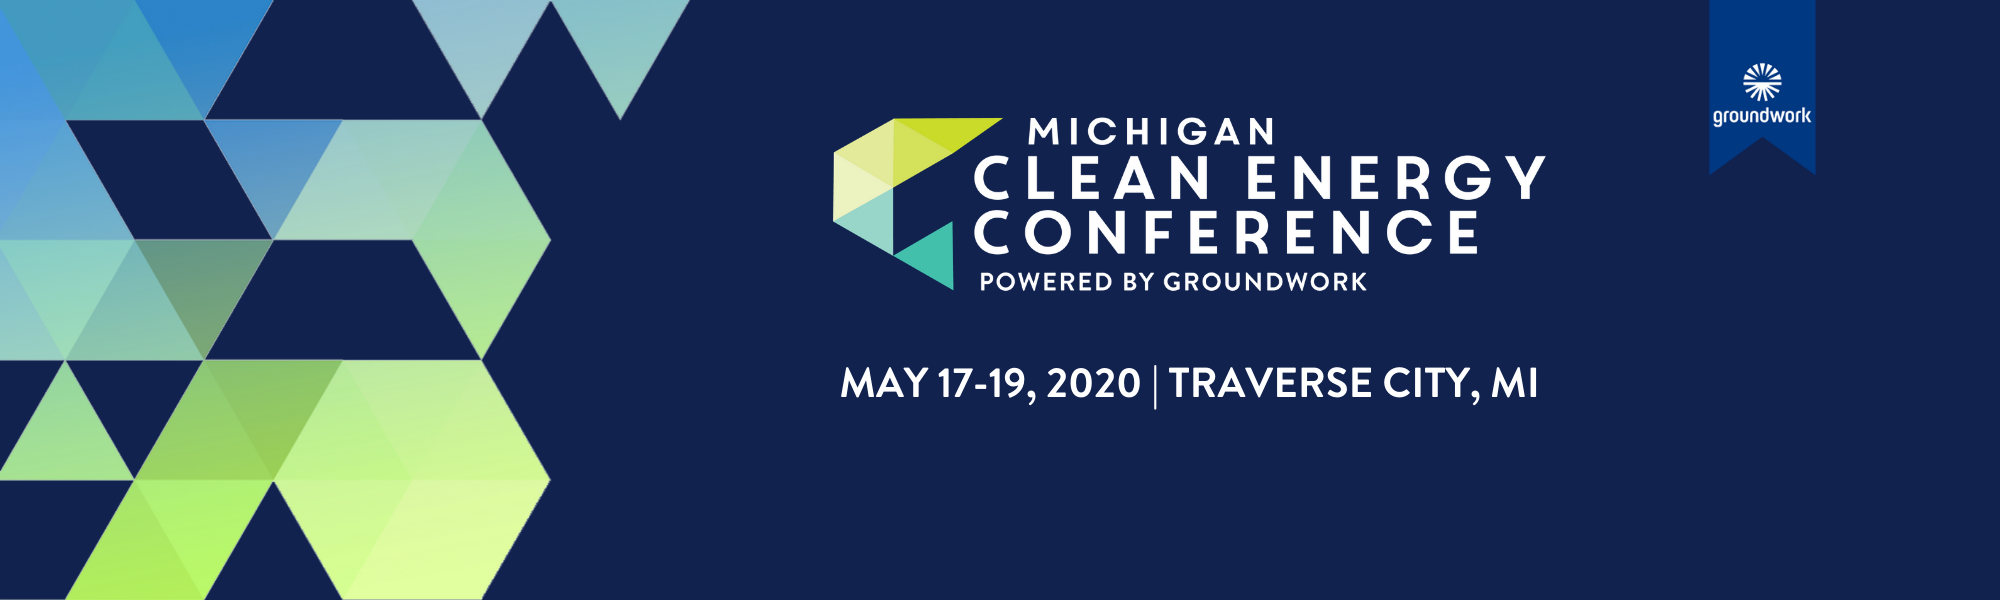 Michigan Clean Energy Conference 2020